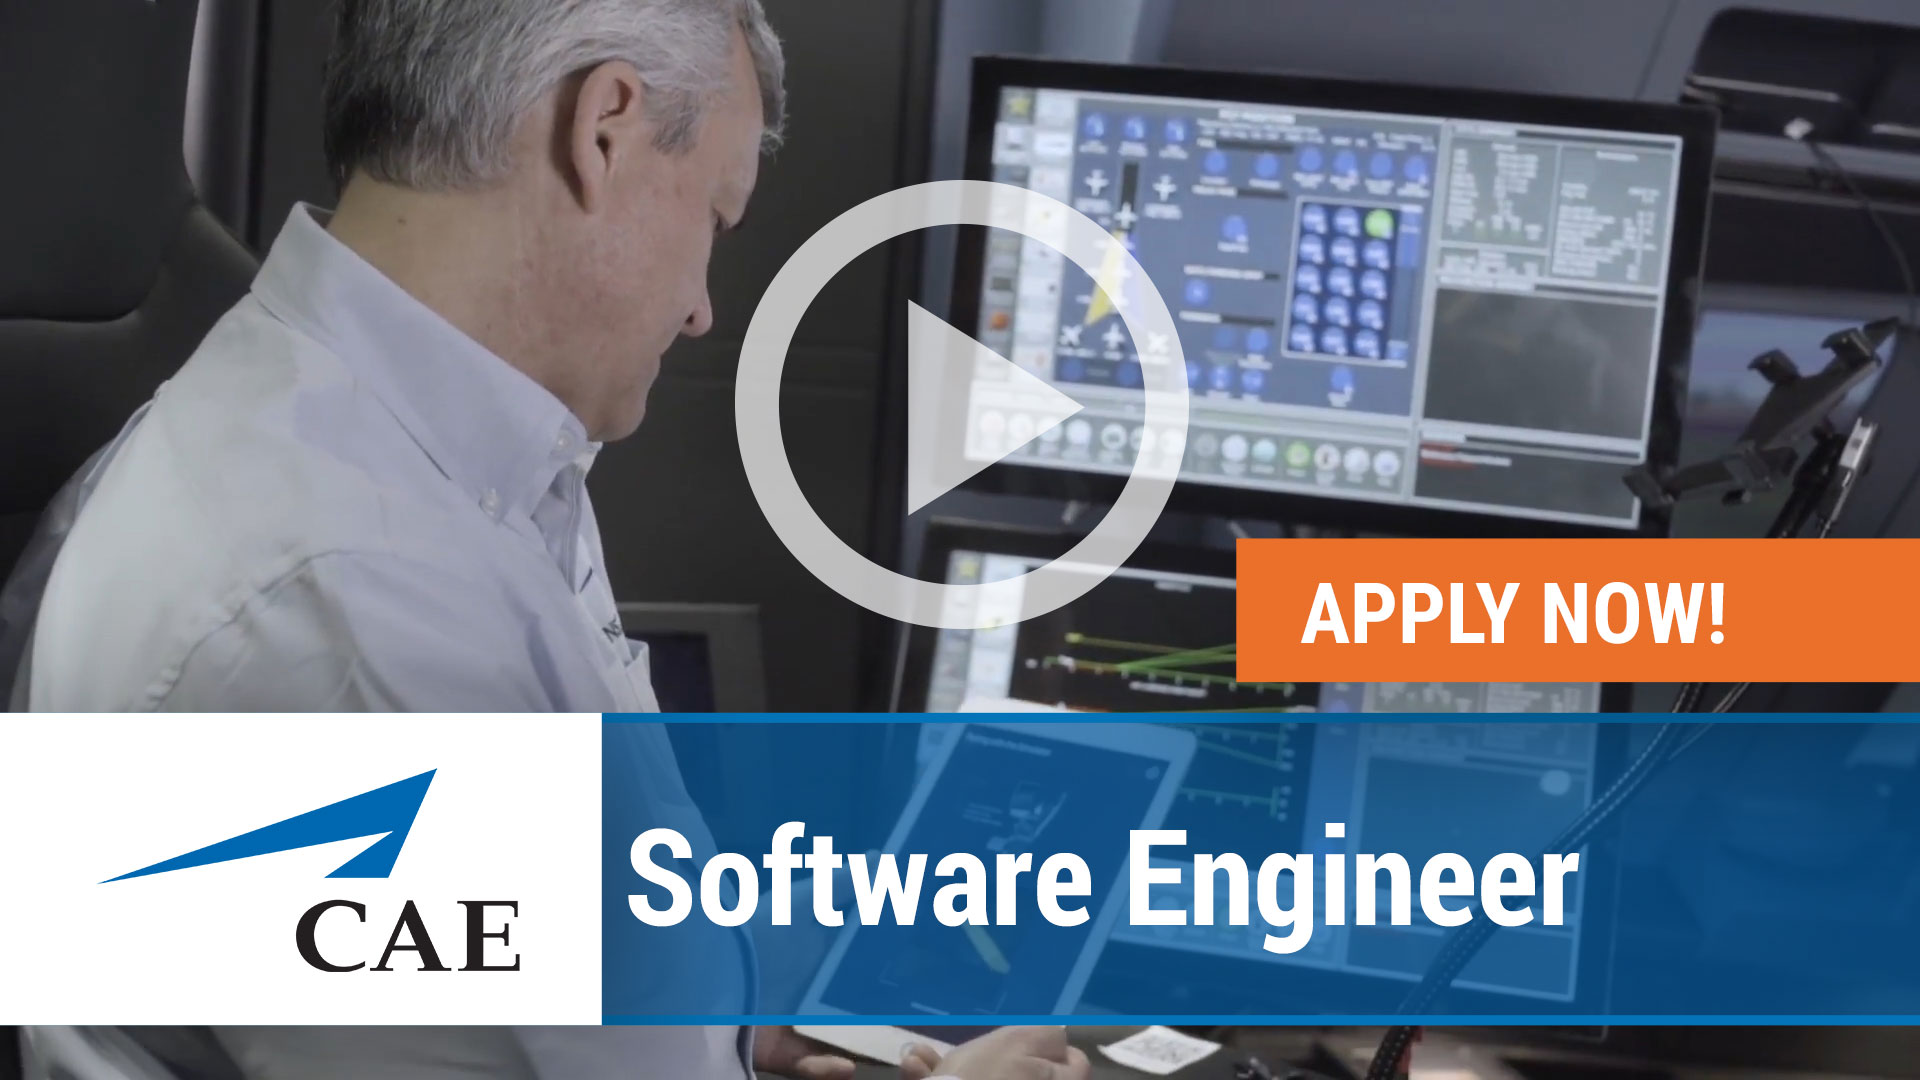 Watch our careers video for available job opening Software Engineer in Varies in Europe, e.g. German